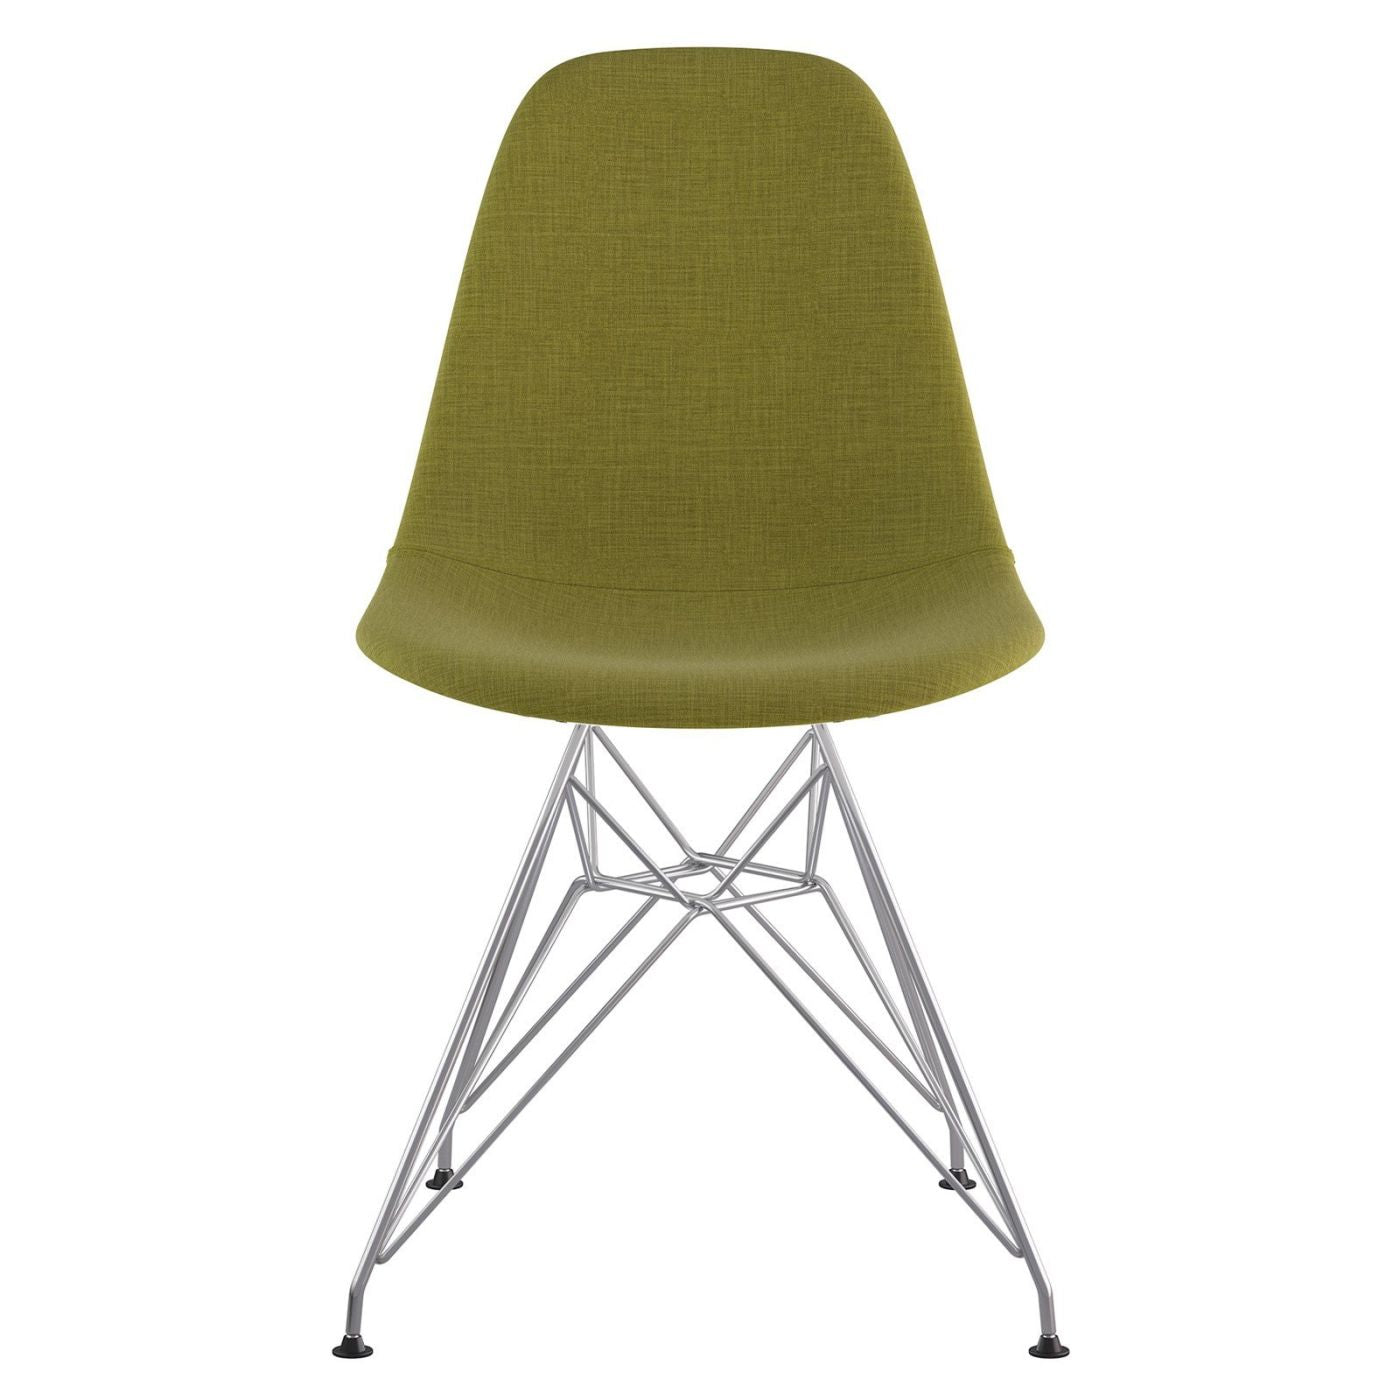 Beau Mid Century Eiffel Side Chair Avocado Green Stainless Steel With Brushed  Nickel Finish Dining ...